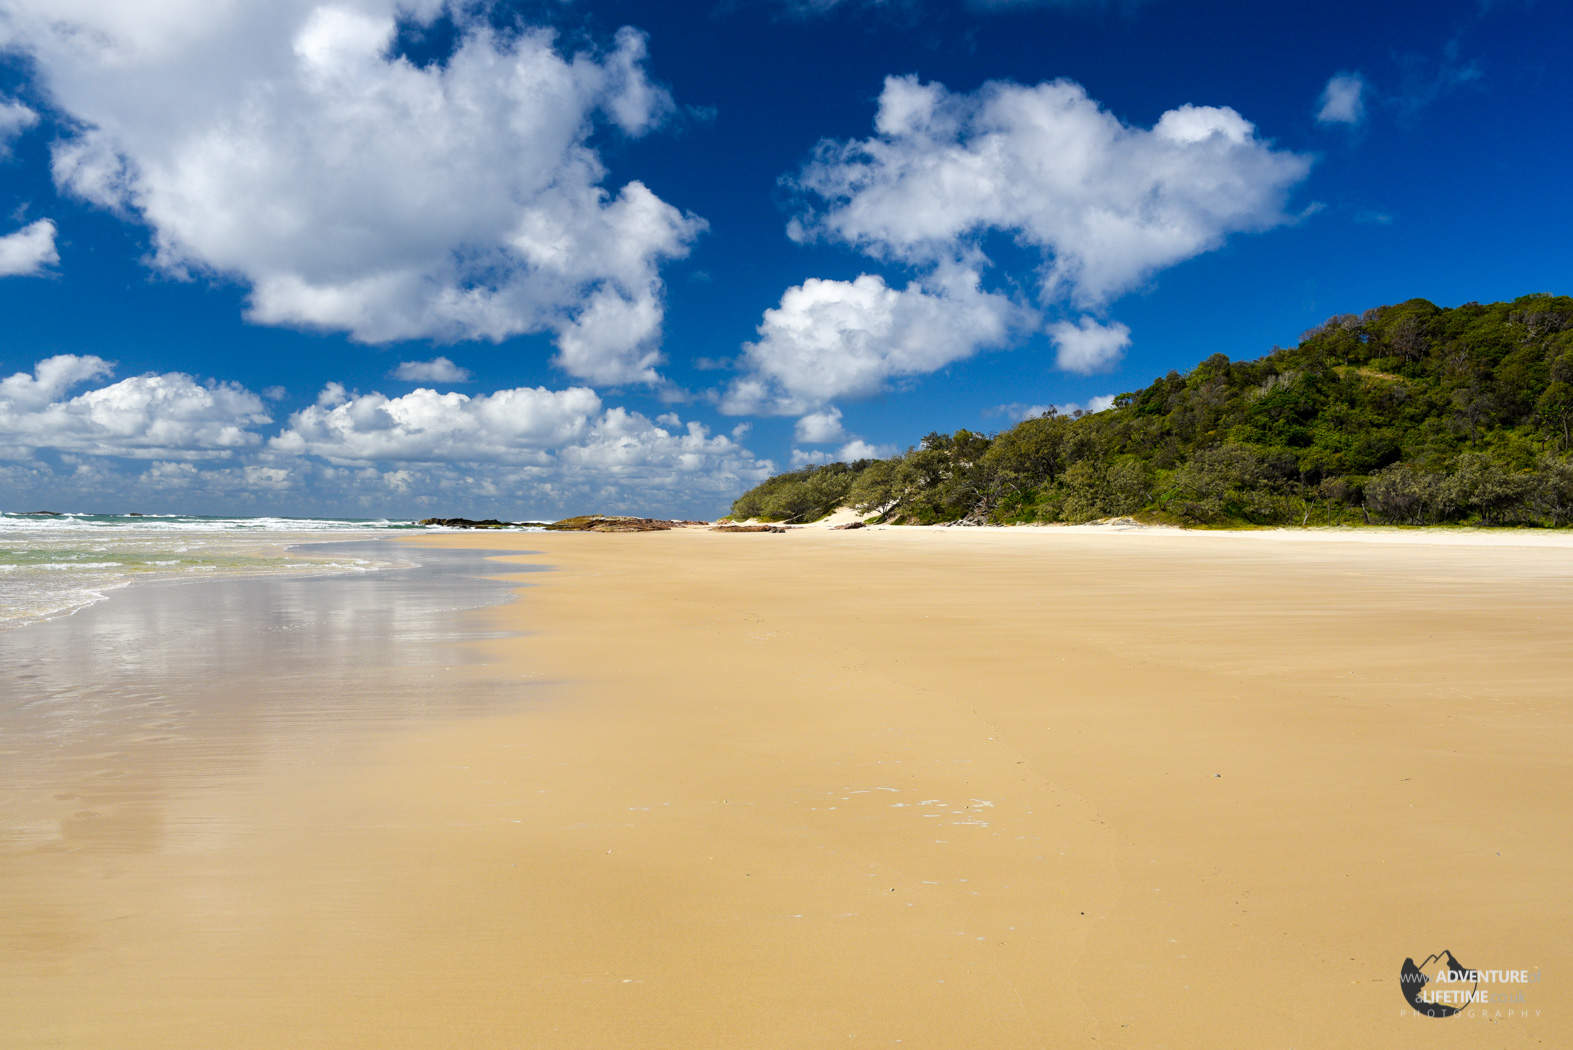 Beach at Stradbroke Island